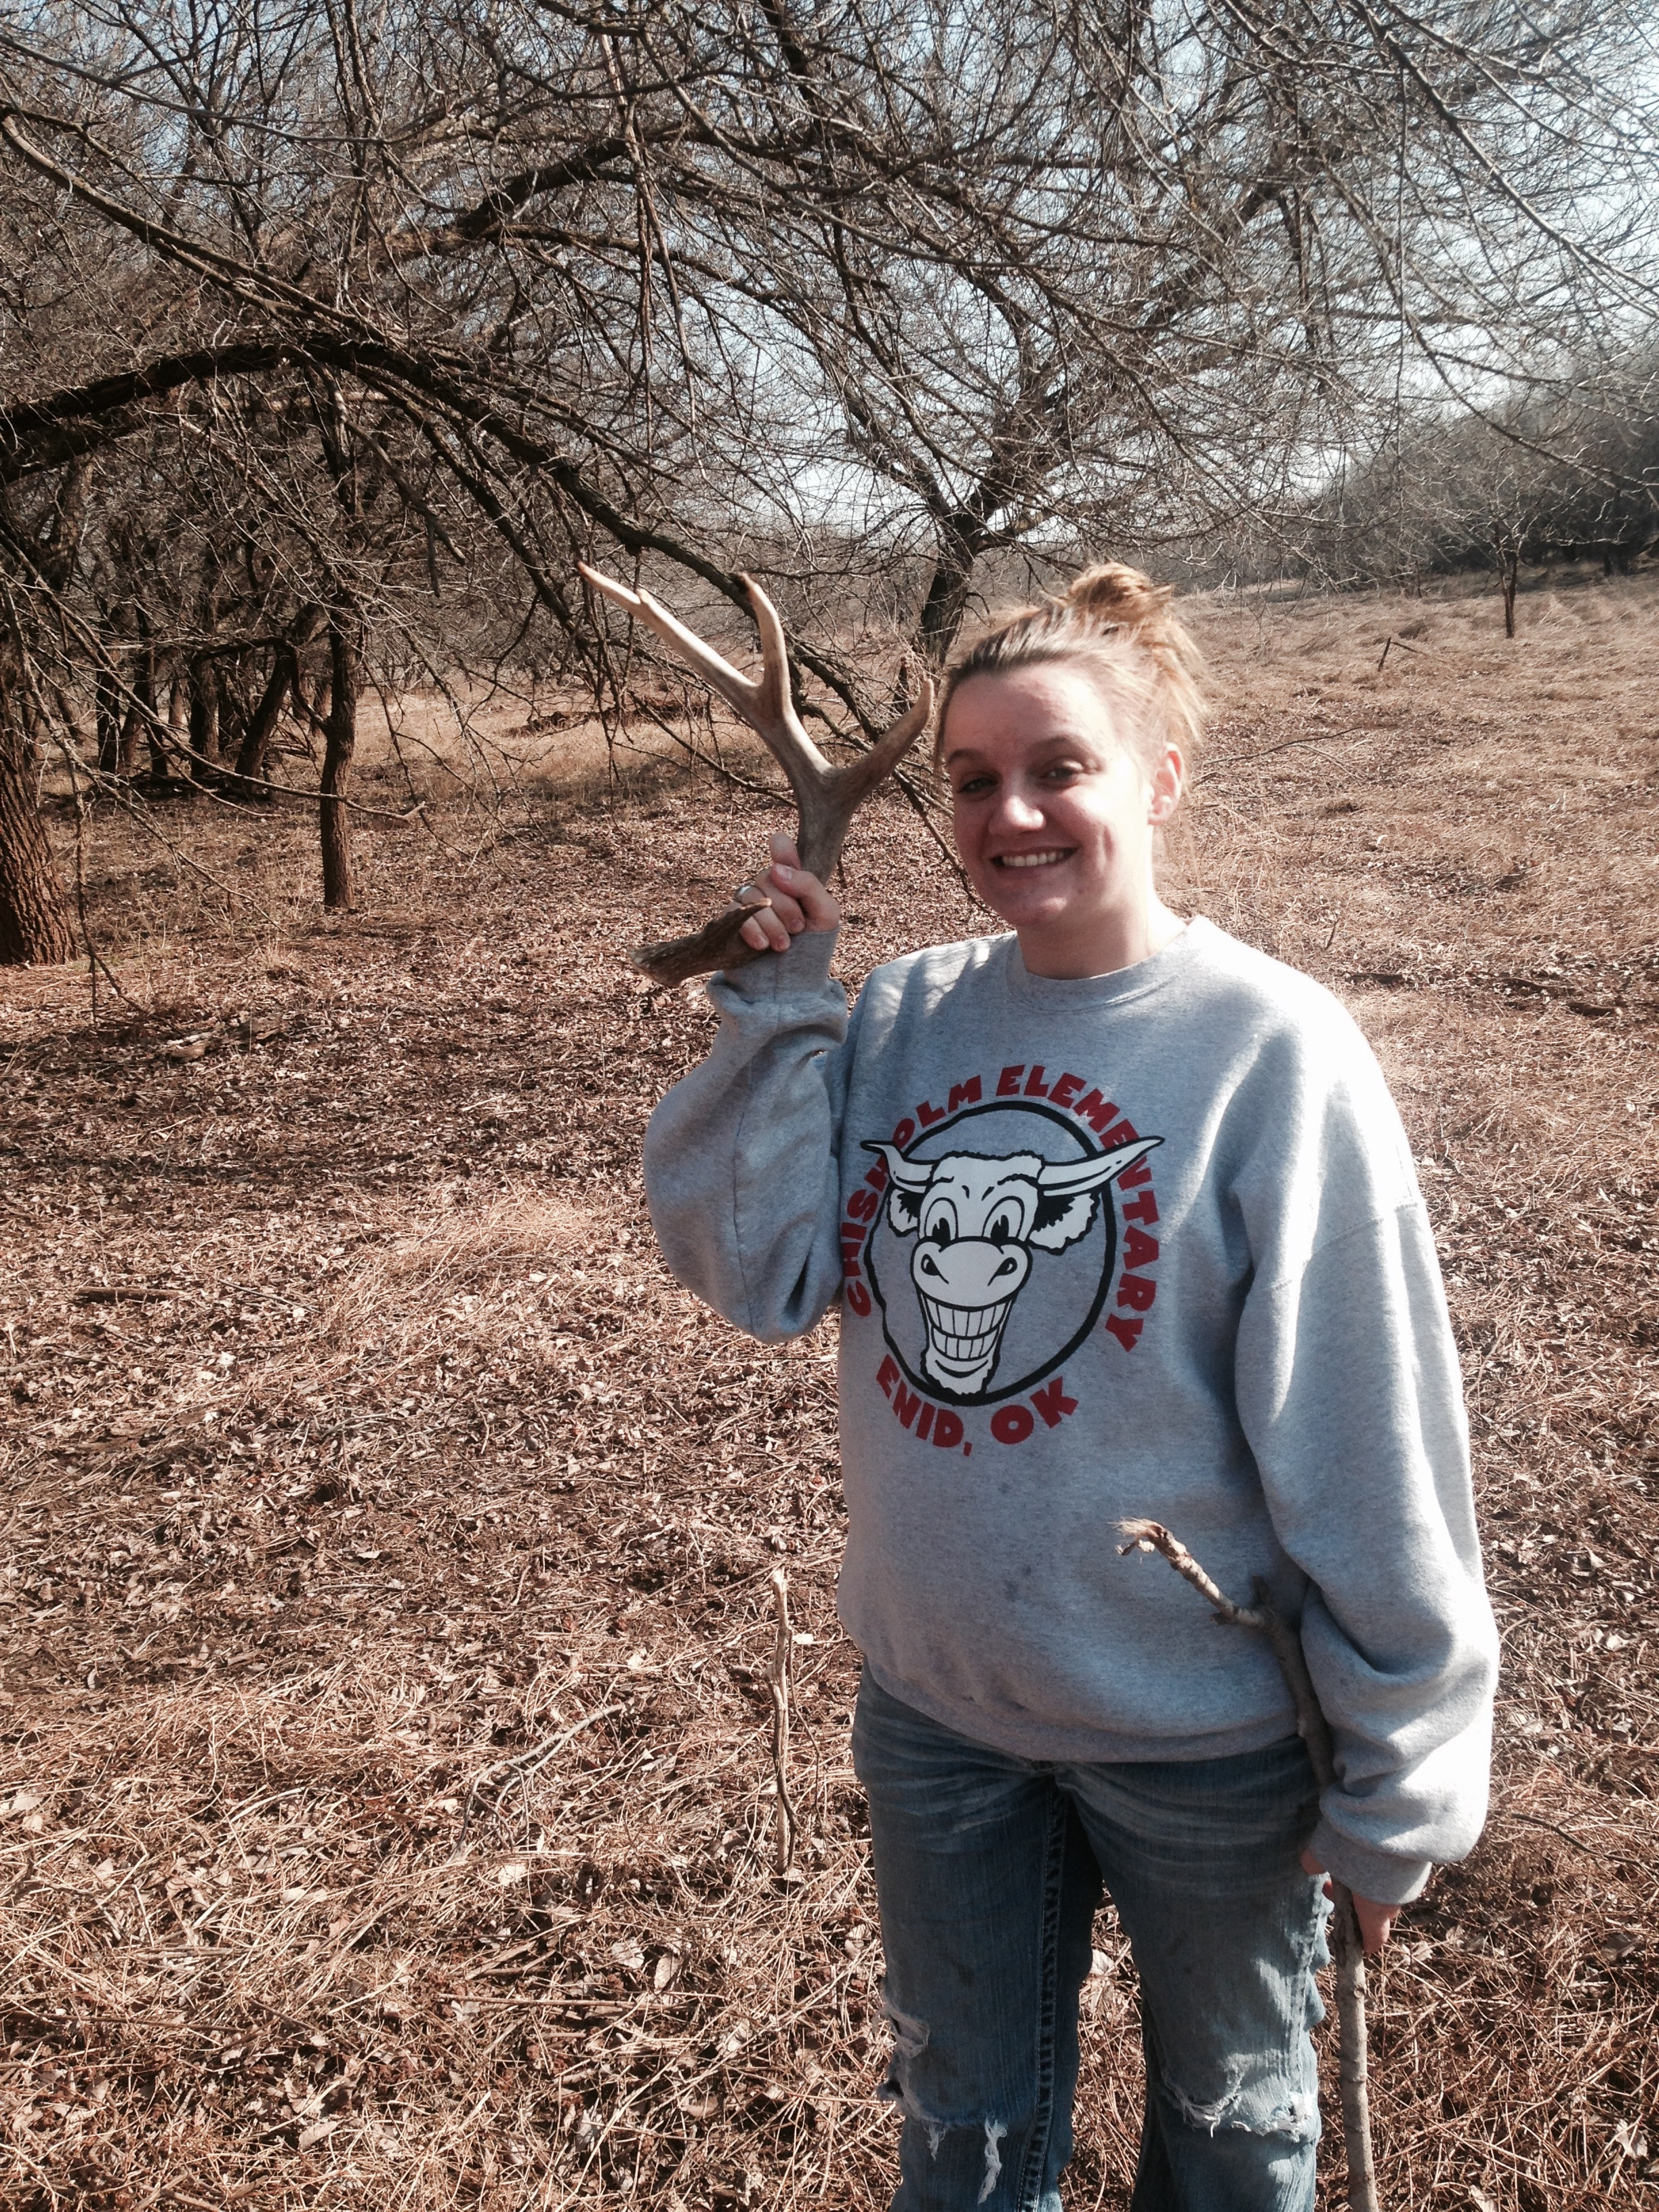 Brittani shed hunting NW Oklahoma SHED HUNTING BASICS https://reelcamogirl.wordpress.com/2015/02/20/shed-hunting-basics/